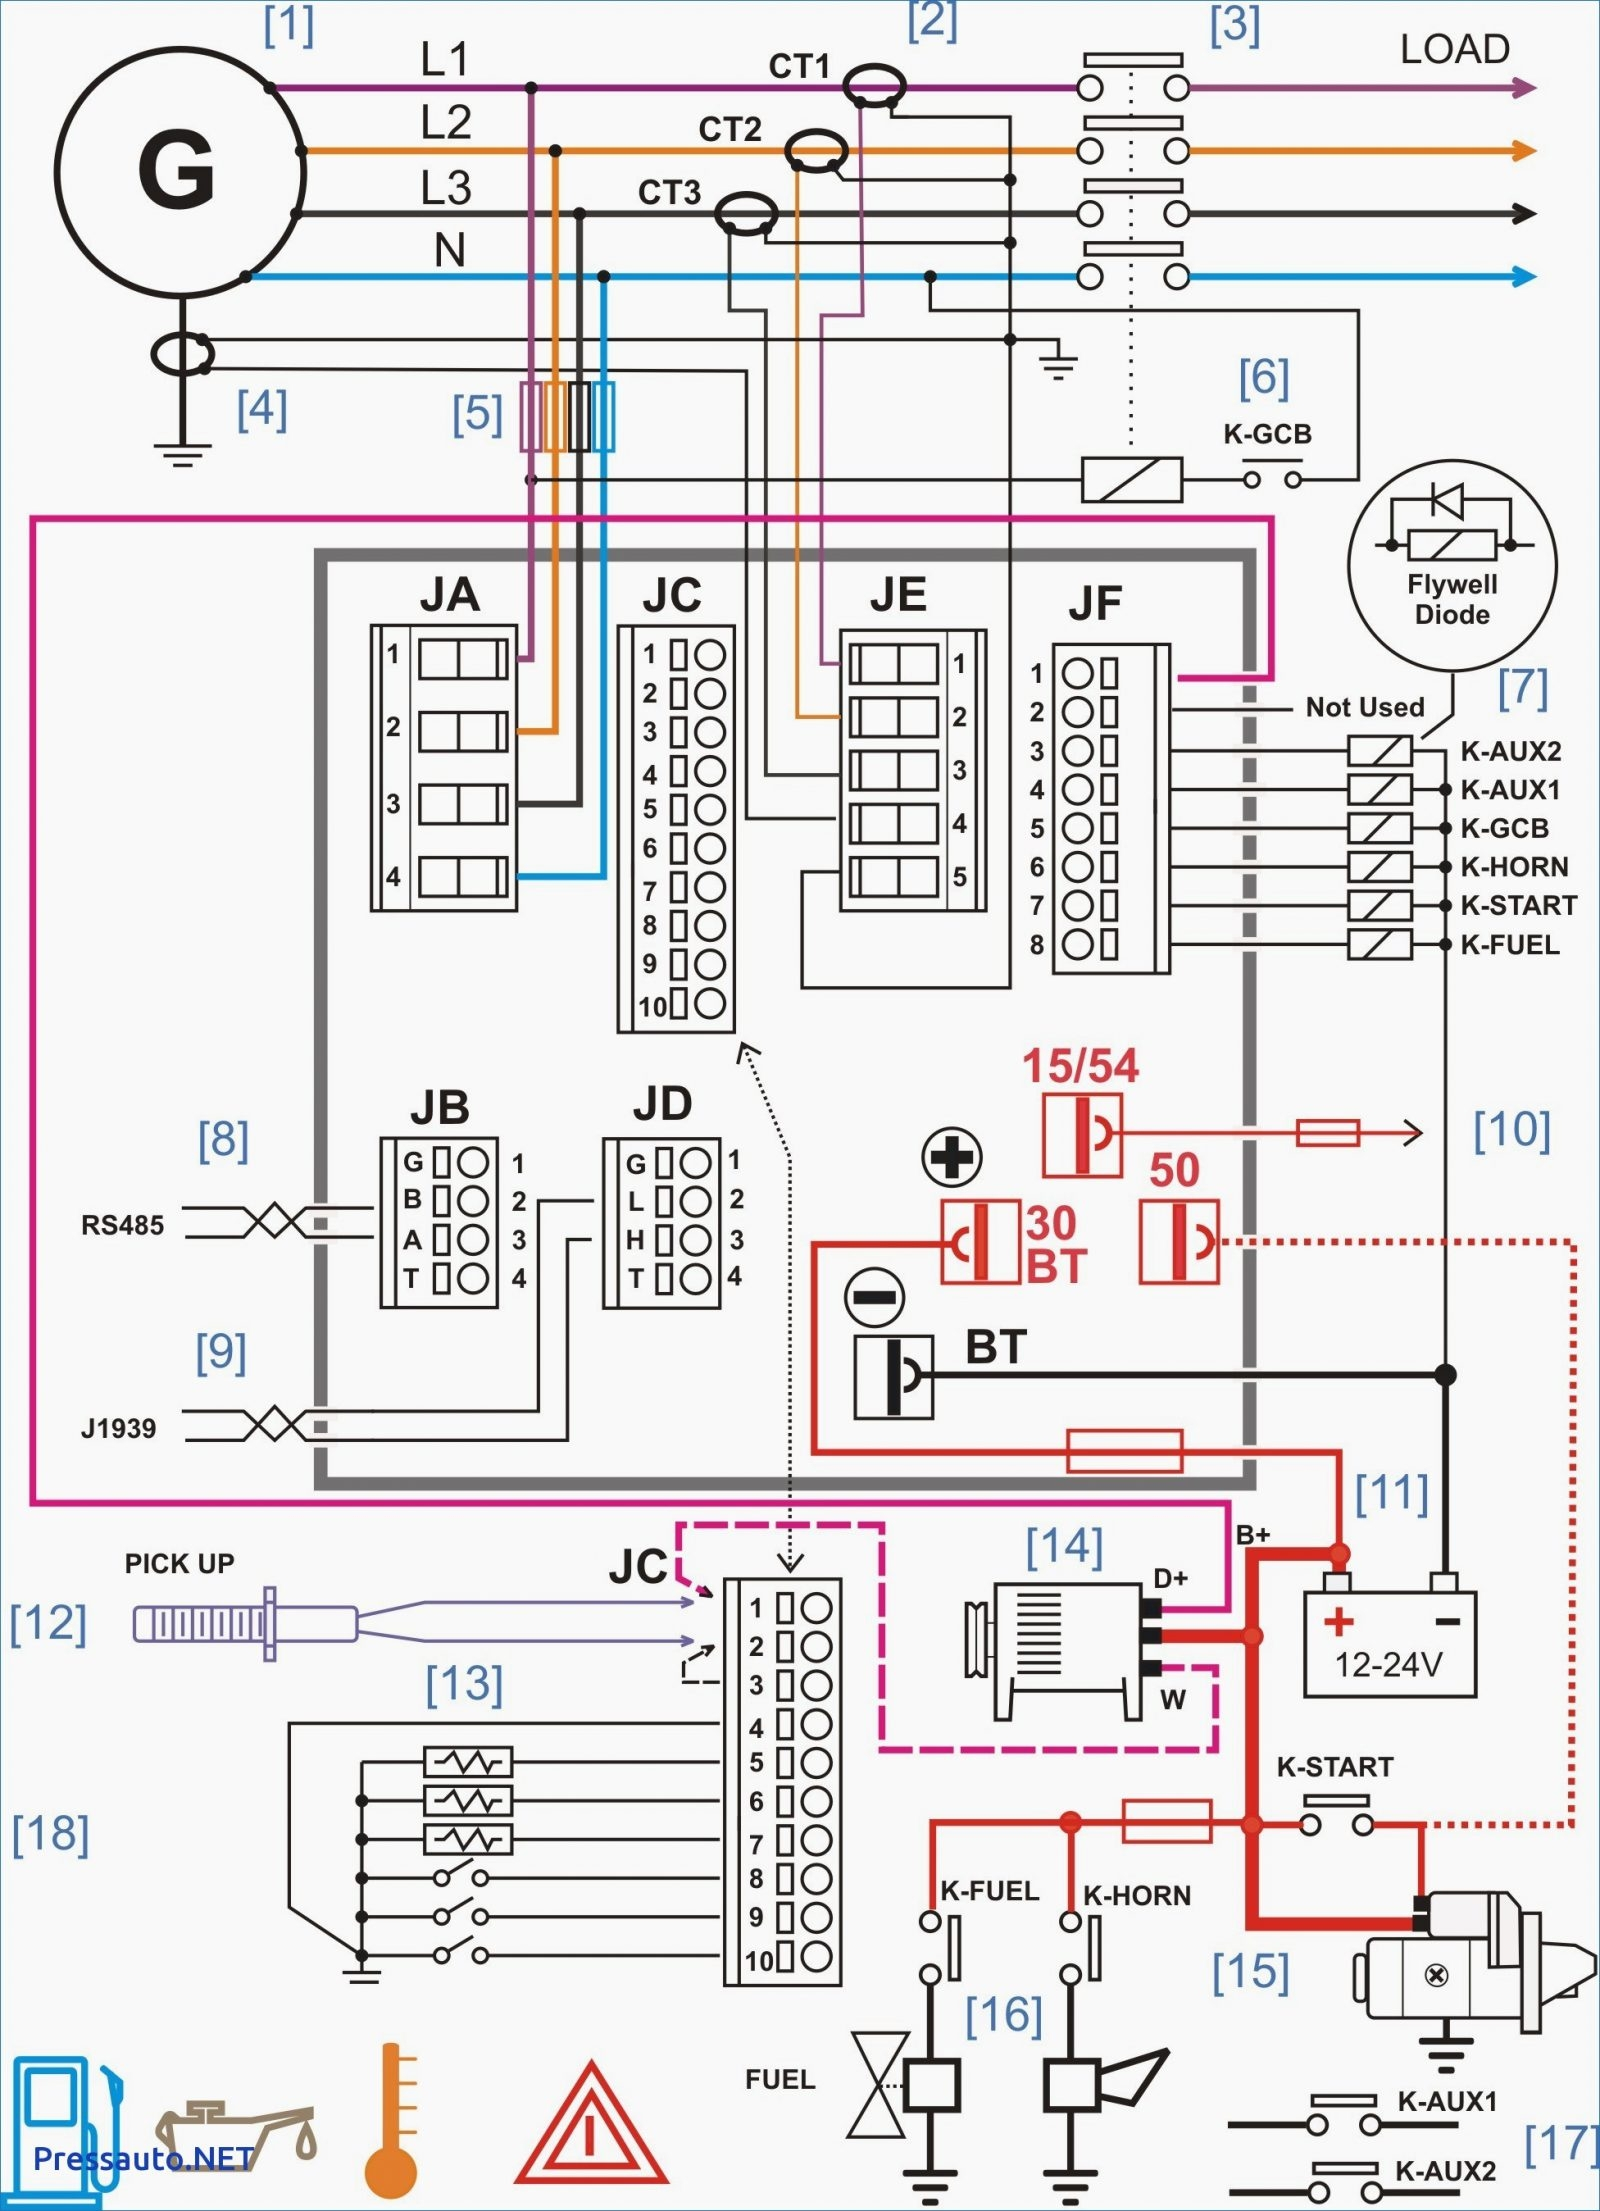 asco 300 wiring diagram 1968 ct90 series schematic free pa 200